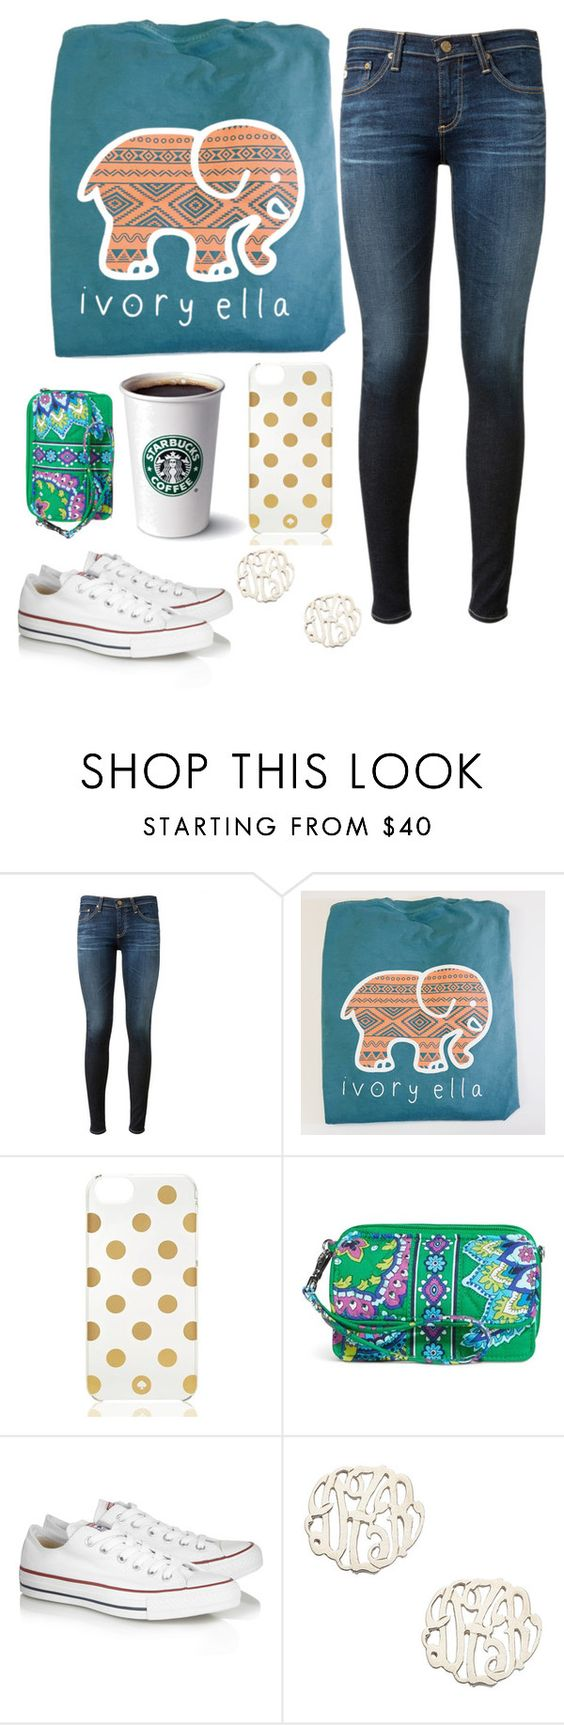 """""""Ready for Church tonight❤️"""" by theblonde07 ❤ liked on Polyvore featuring AG Adriano Goldschmied, Kate Spade, Vera Bradley, Converse, Danielle Stevens and blondiesbest"""